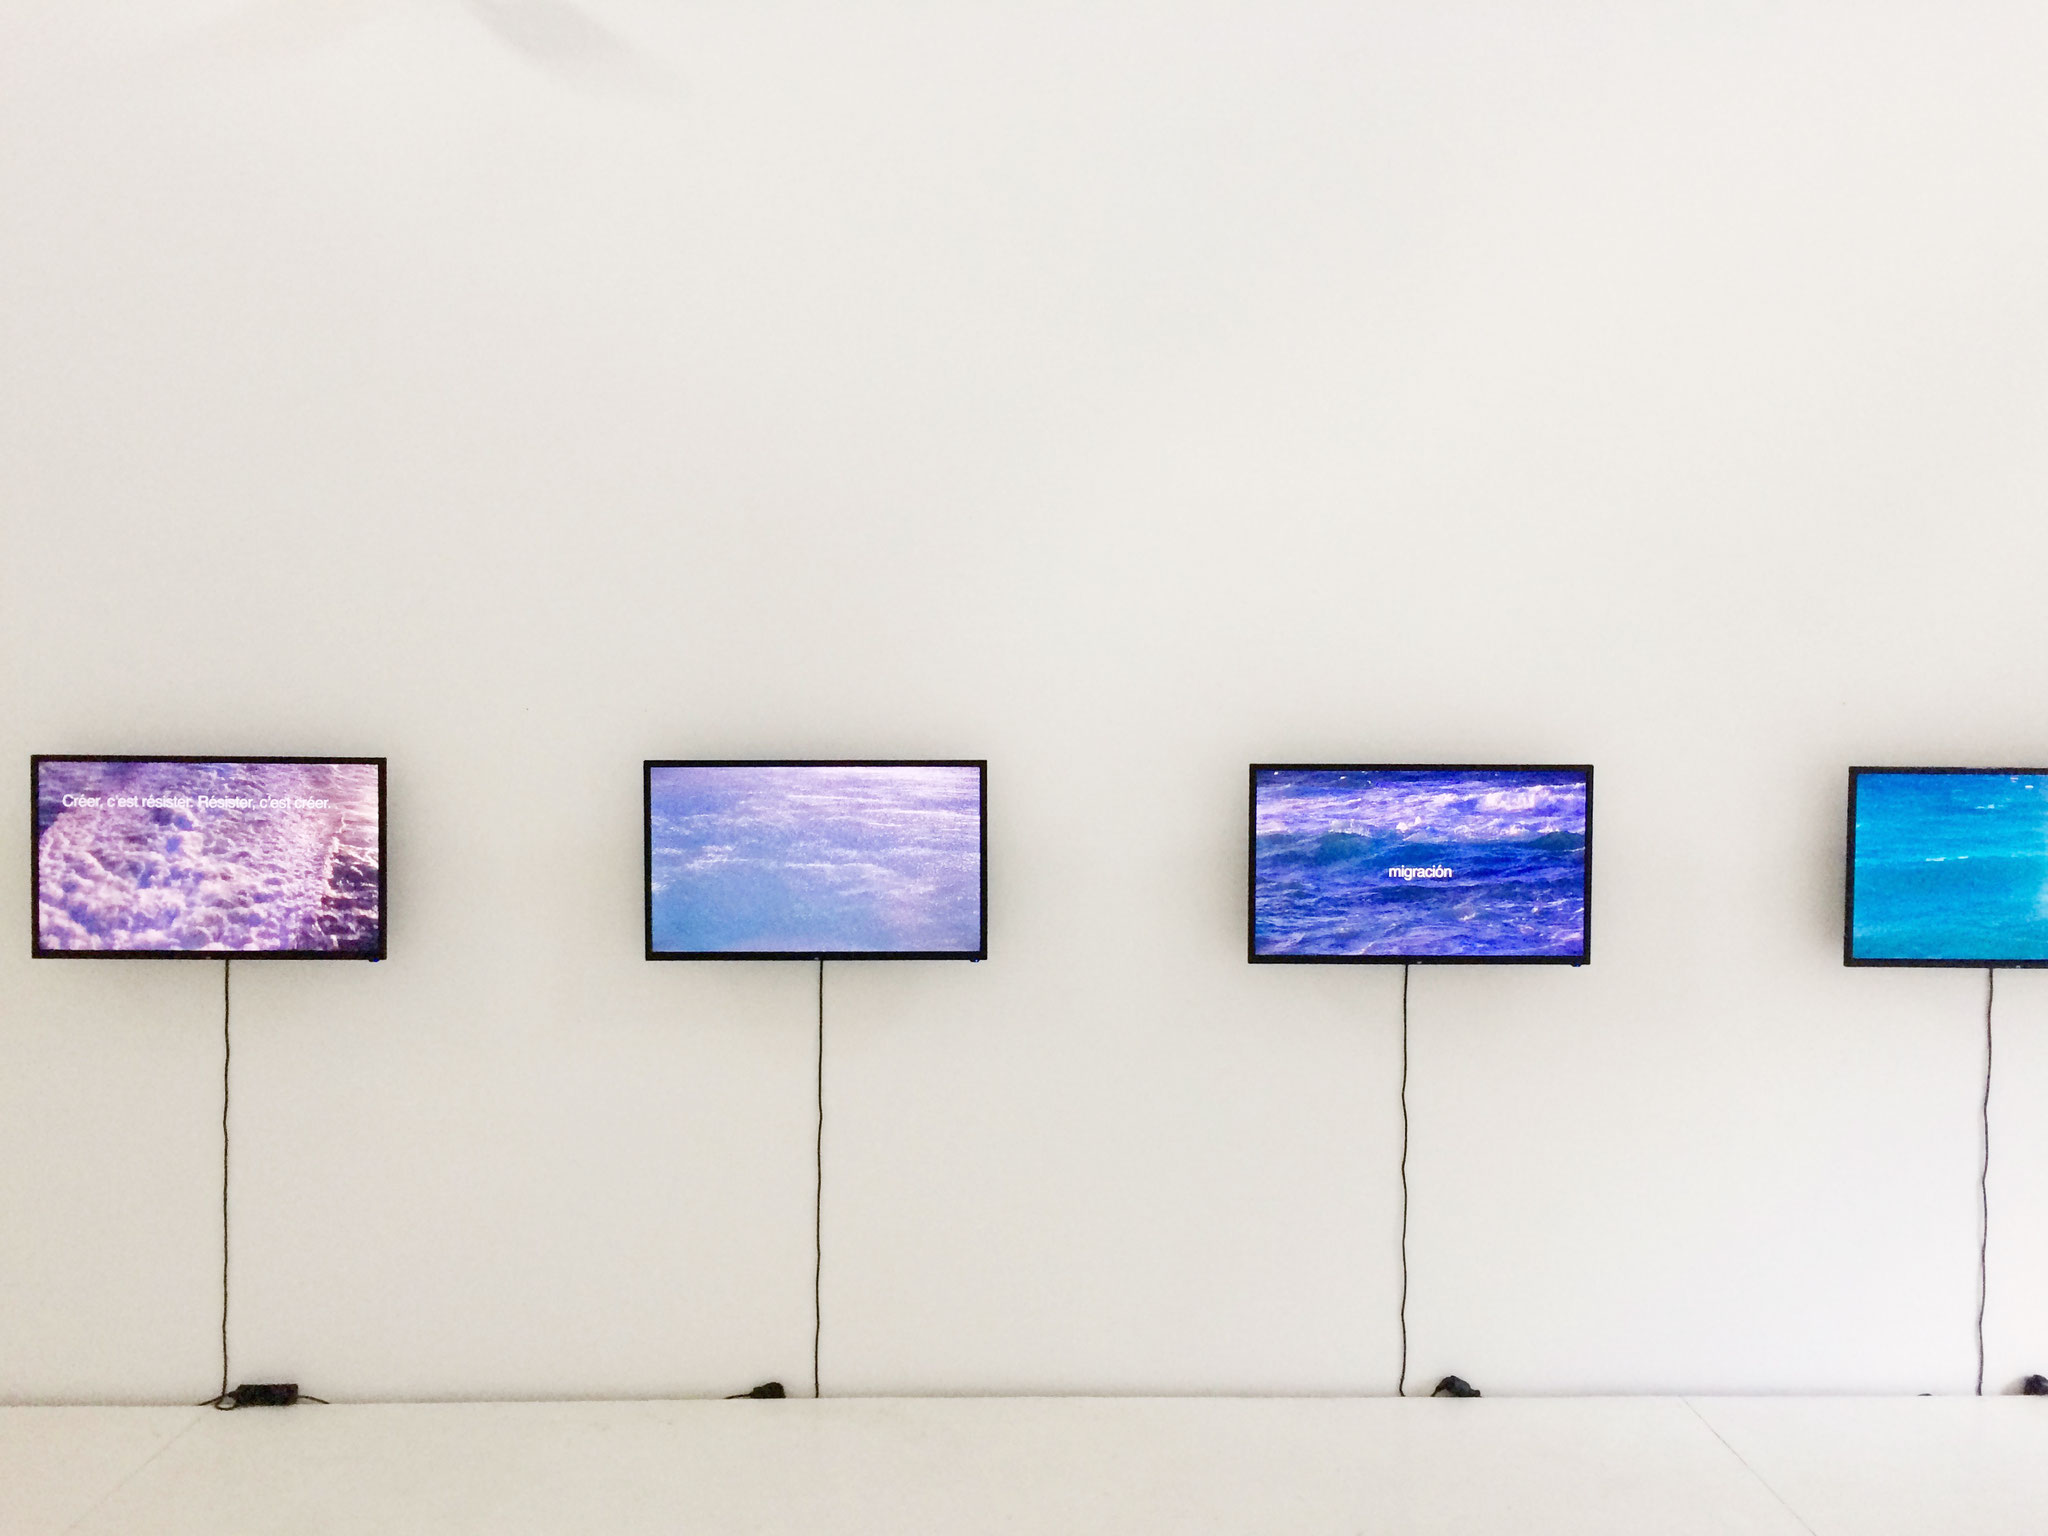 Antoni Muntadas, Aller/Retour, 2013/17, video installation, 6 Led monitors, 700 x 60 cm